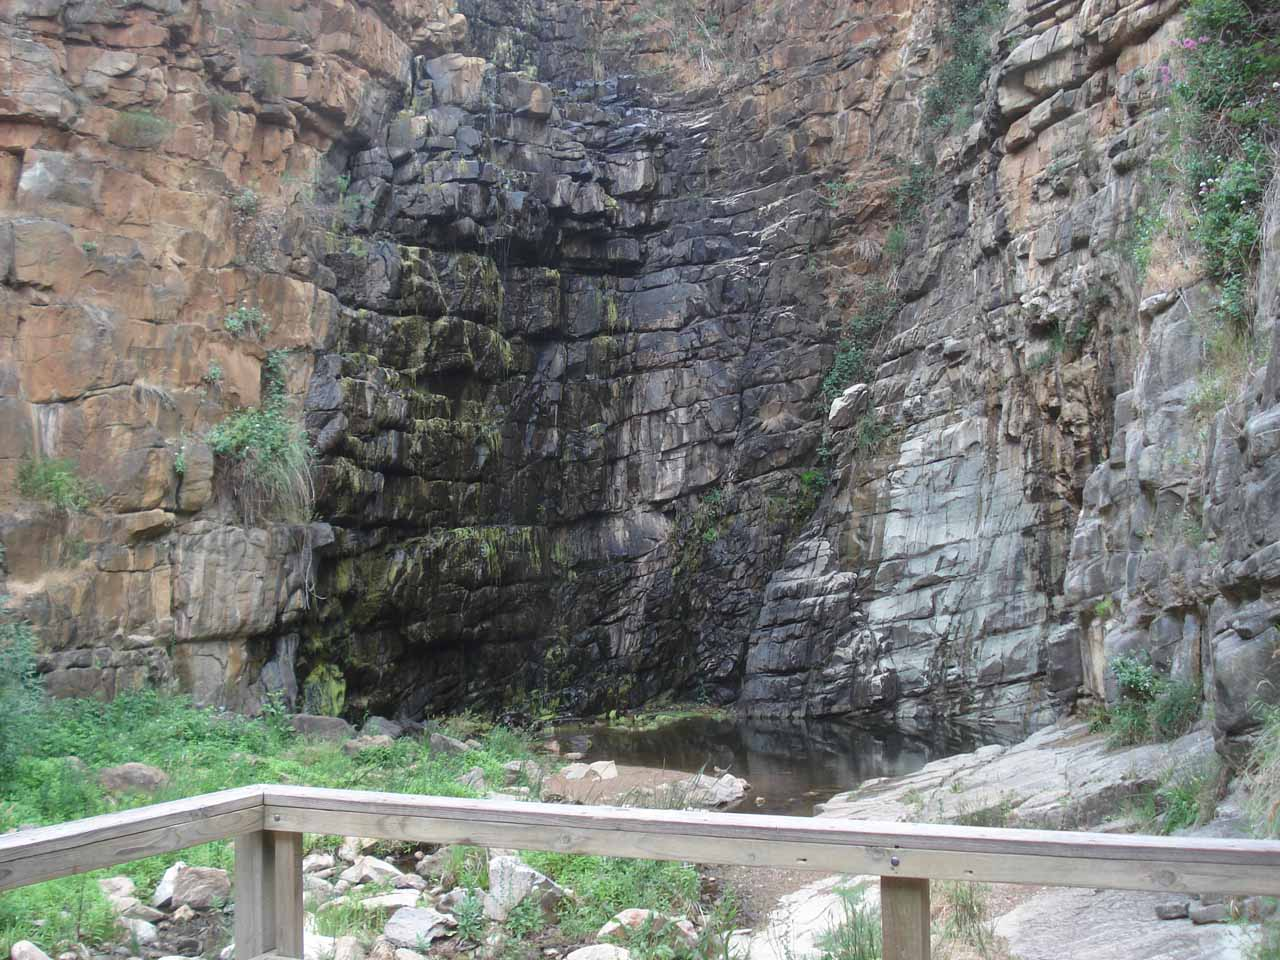 When we finally made it to the First Falls (Morialta Falls), we were disappointed to see it was dry